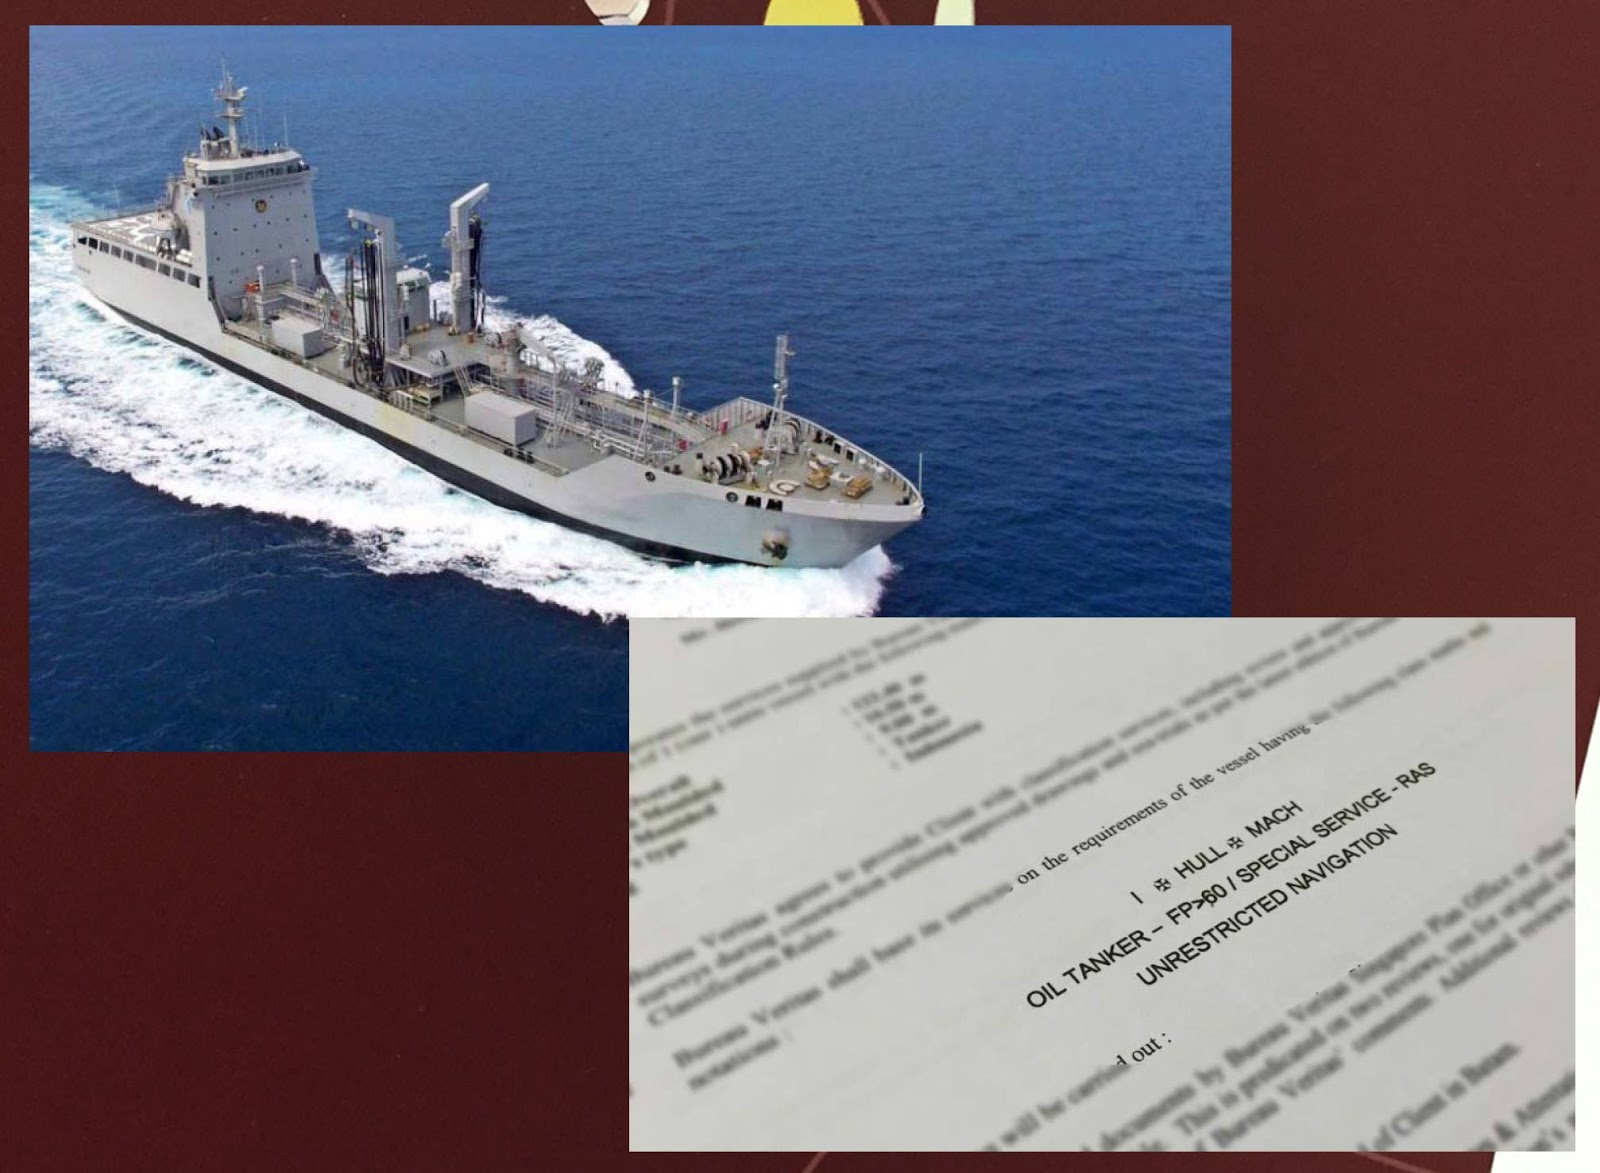 defense studies classification certificate for a new building project of an oil tanker for tni al. Black Bedroom Furniture Sets. Home Design Ideas